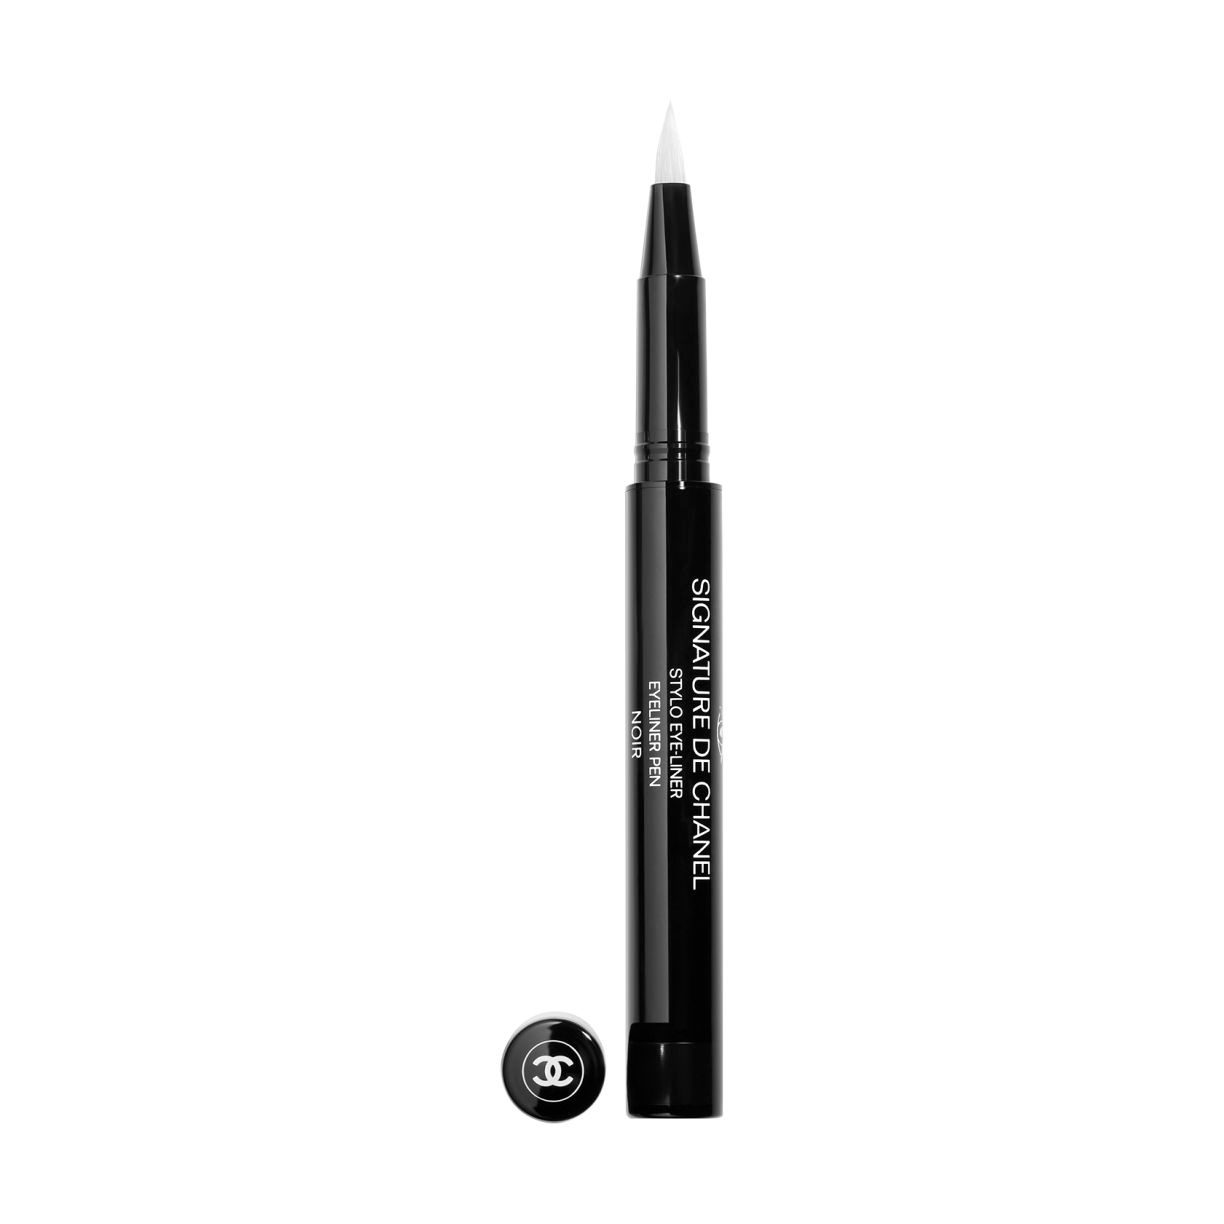 SIGNATURE DE CHANEL STILO EYELINER INTENSITÀ E LUNGA TENUTA 10 - NOIR